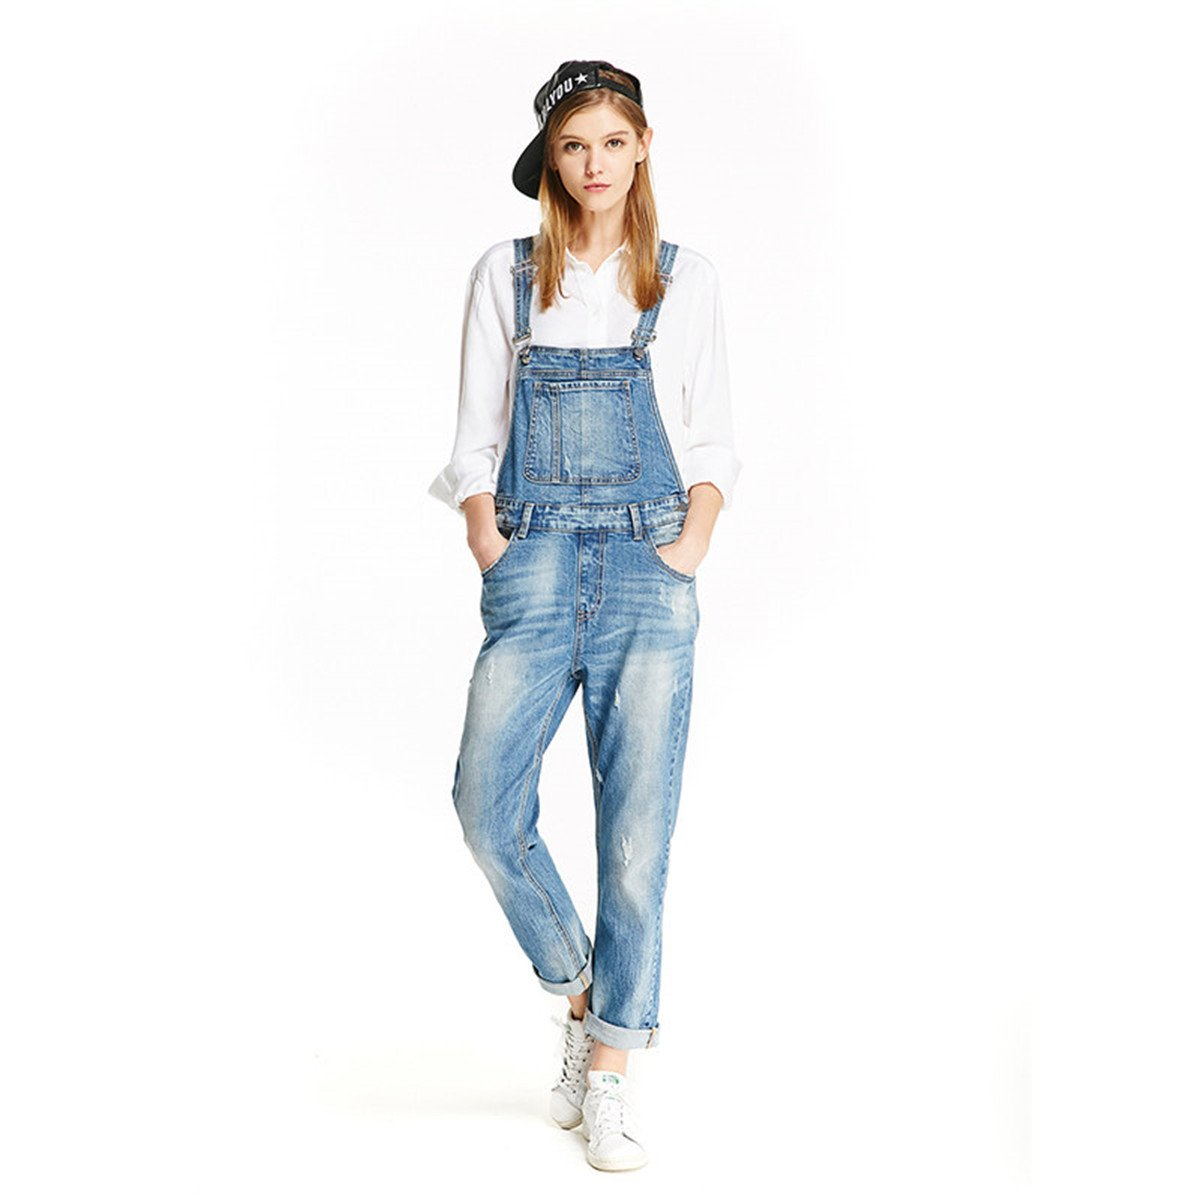 Women Clothing Blue Jeans Denim Overalls (S, Blue) by TRACK SEVEN